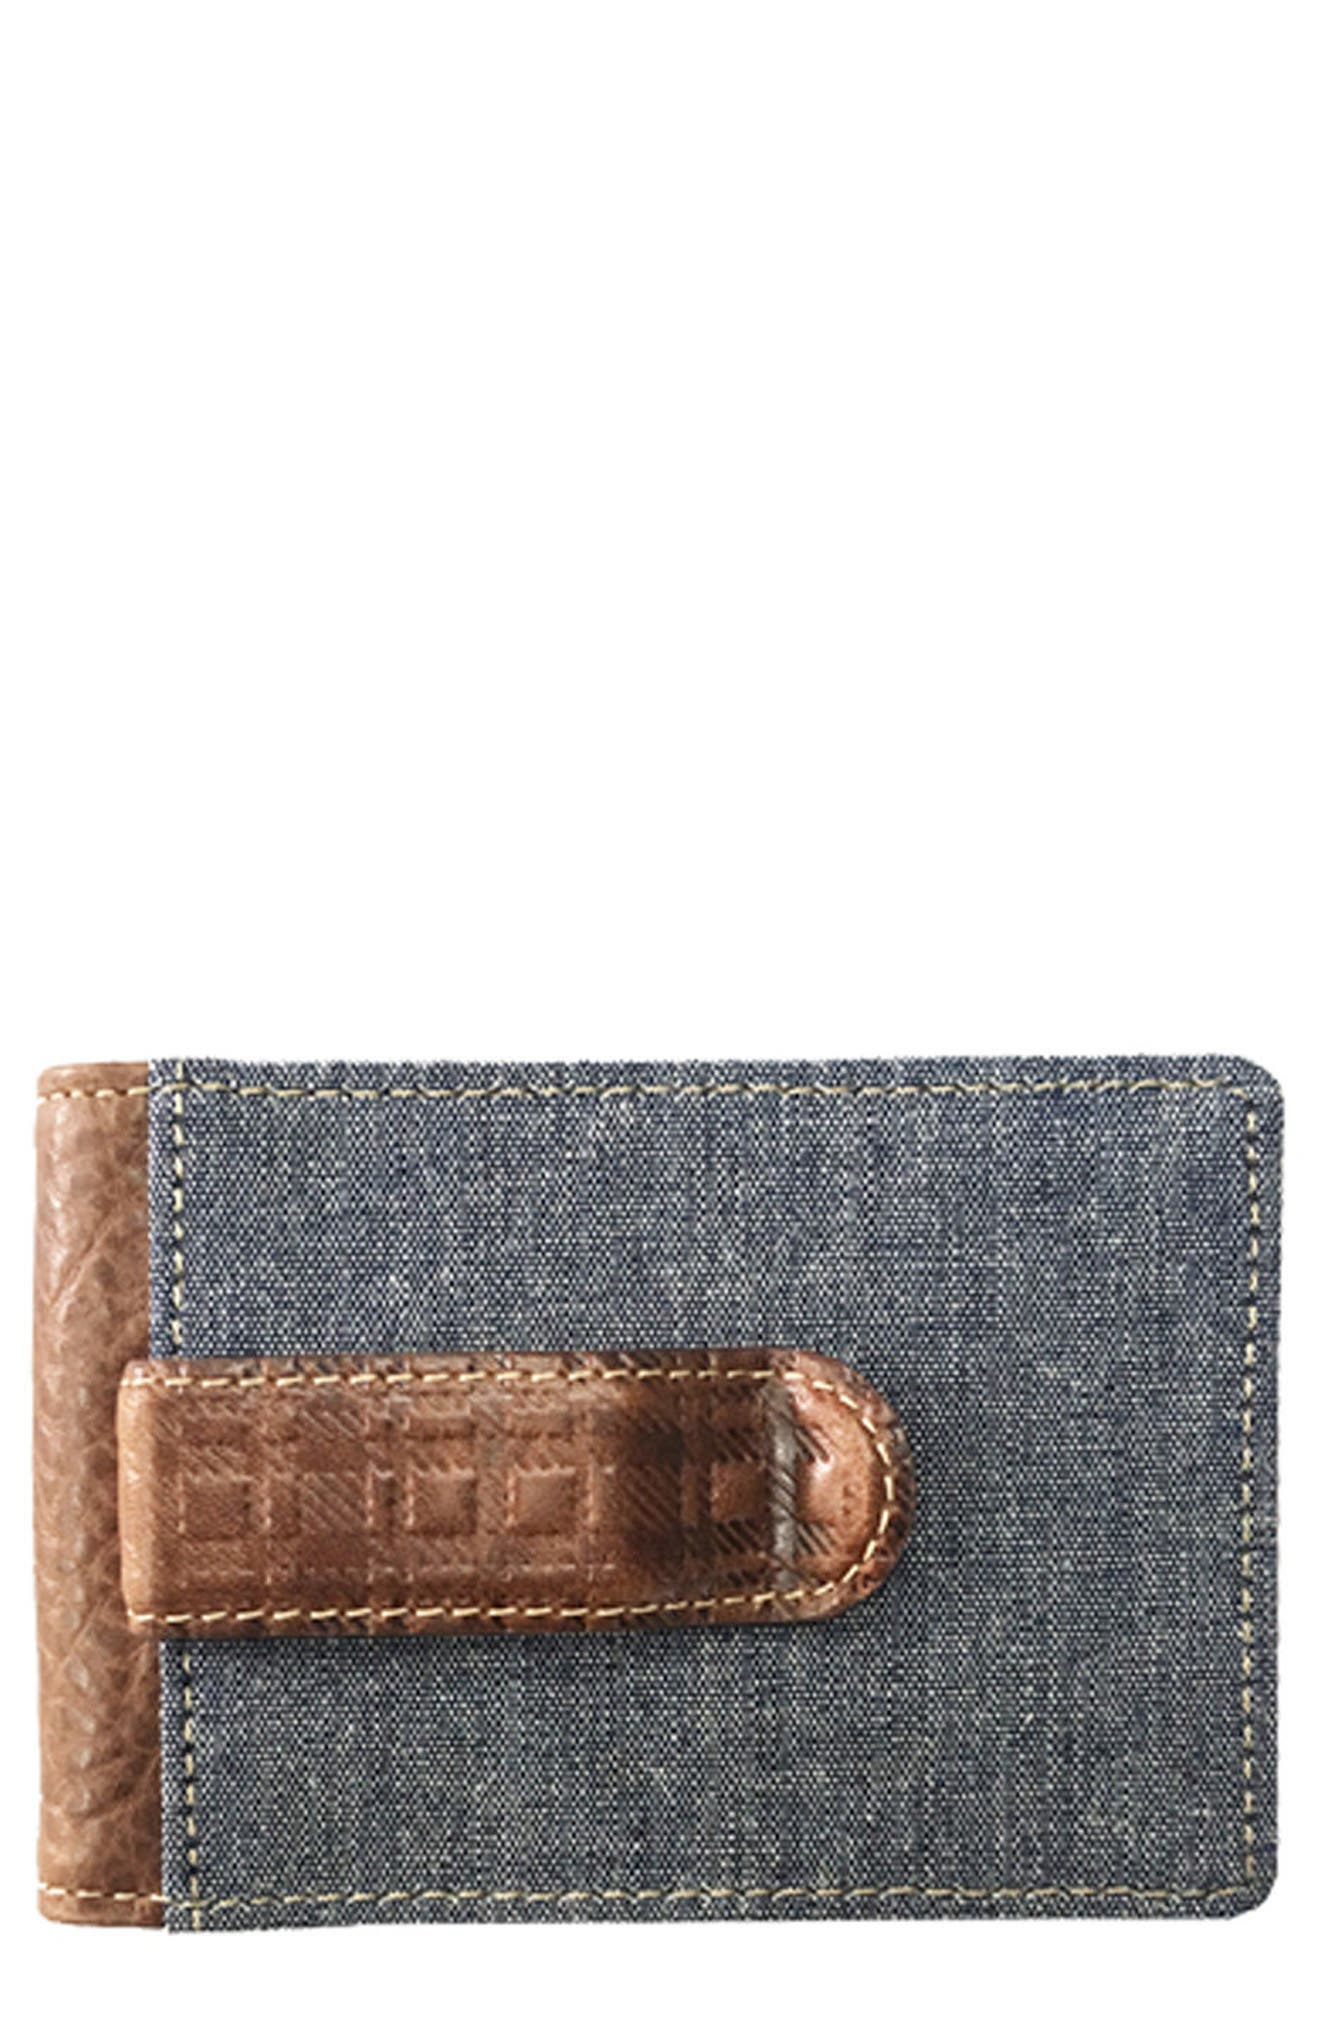 Caleb Bifold Wallet with Money Clip,                             Main thumbnail 1, color,                             210